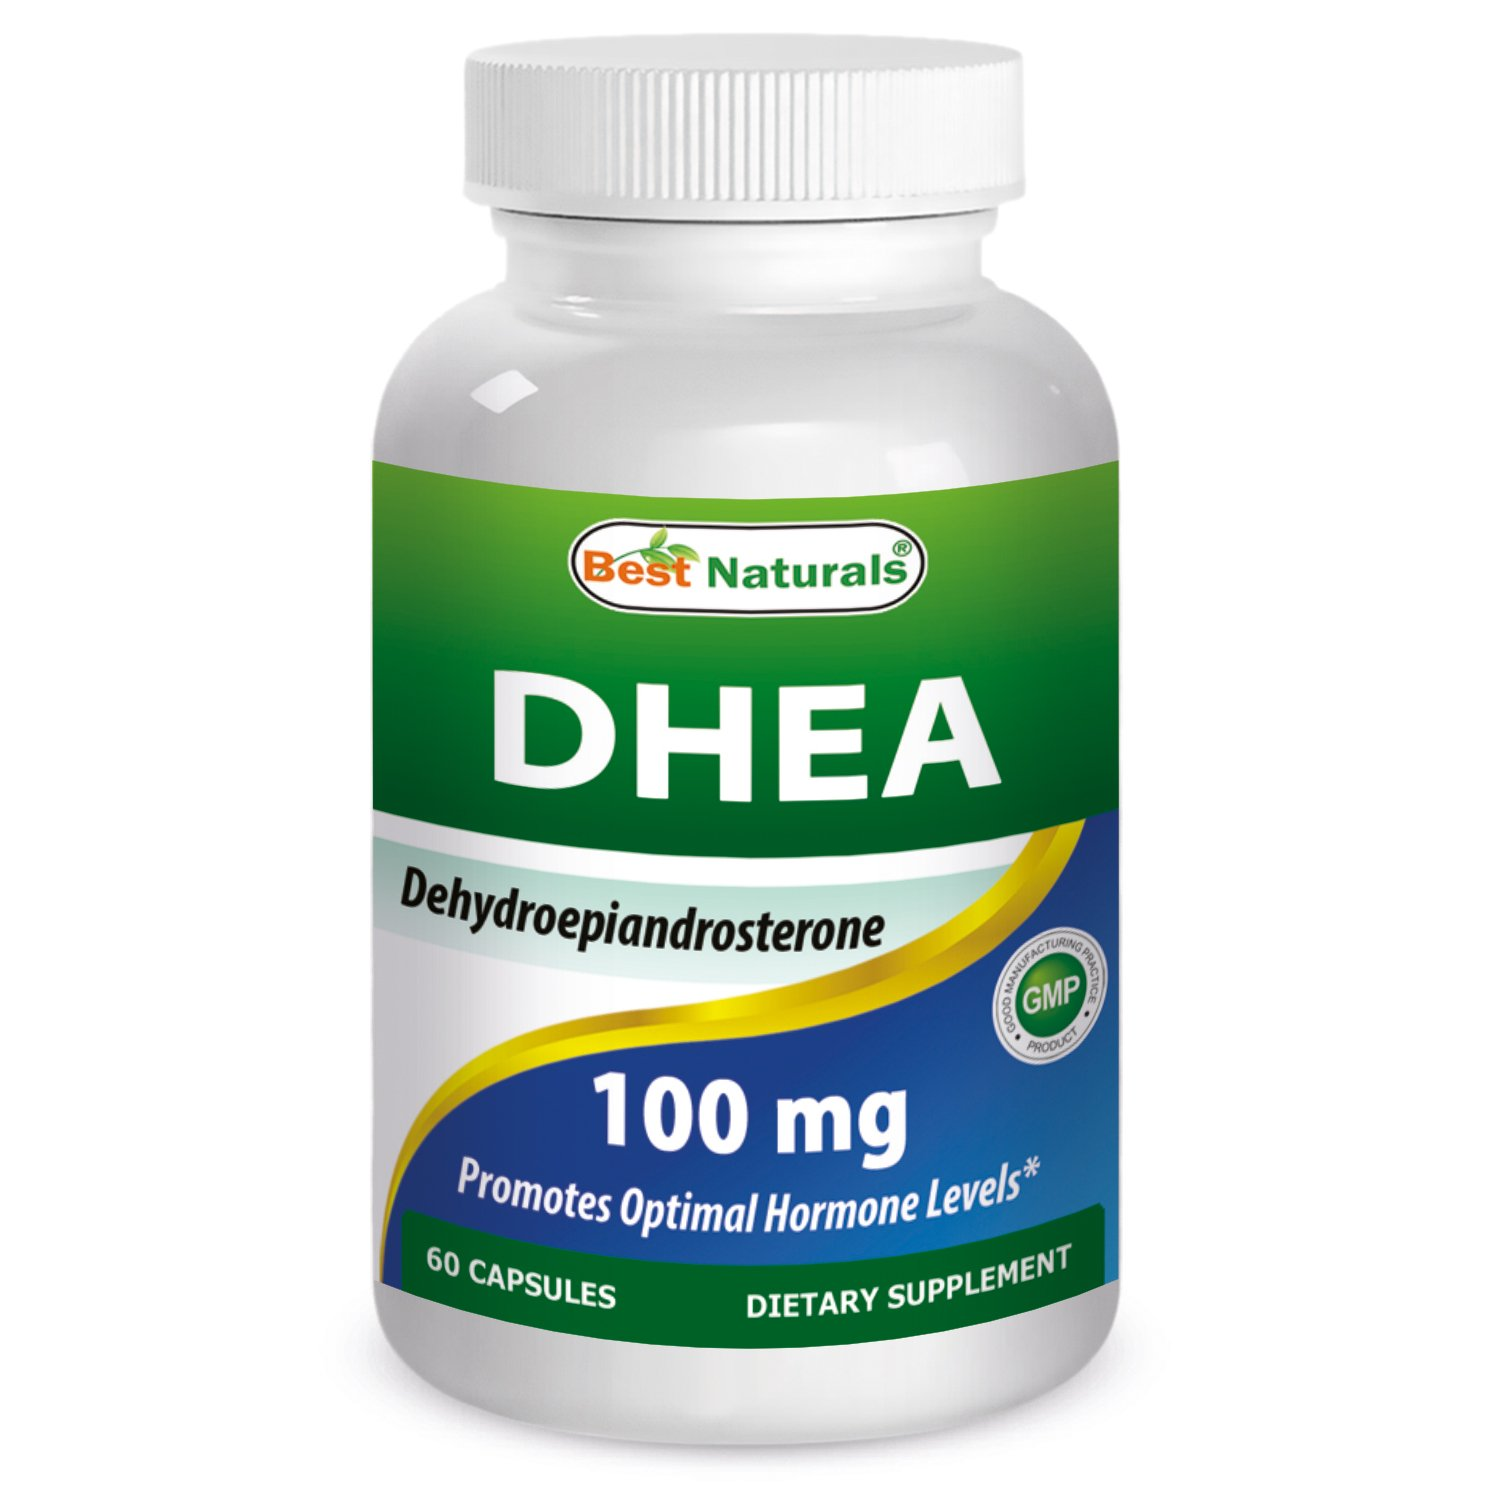 Best Naturals DHEA 100mg Supplement 60 Capsules - Supports Balanced Hormone Levels For Men & Women - Promotes Healthy Aging - USA Manufactured